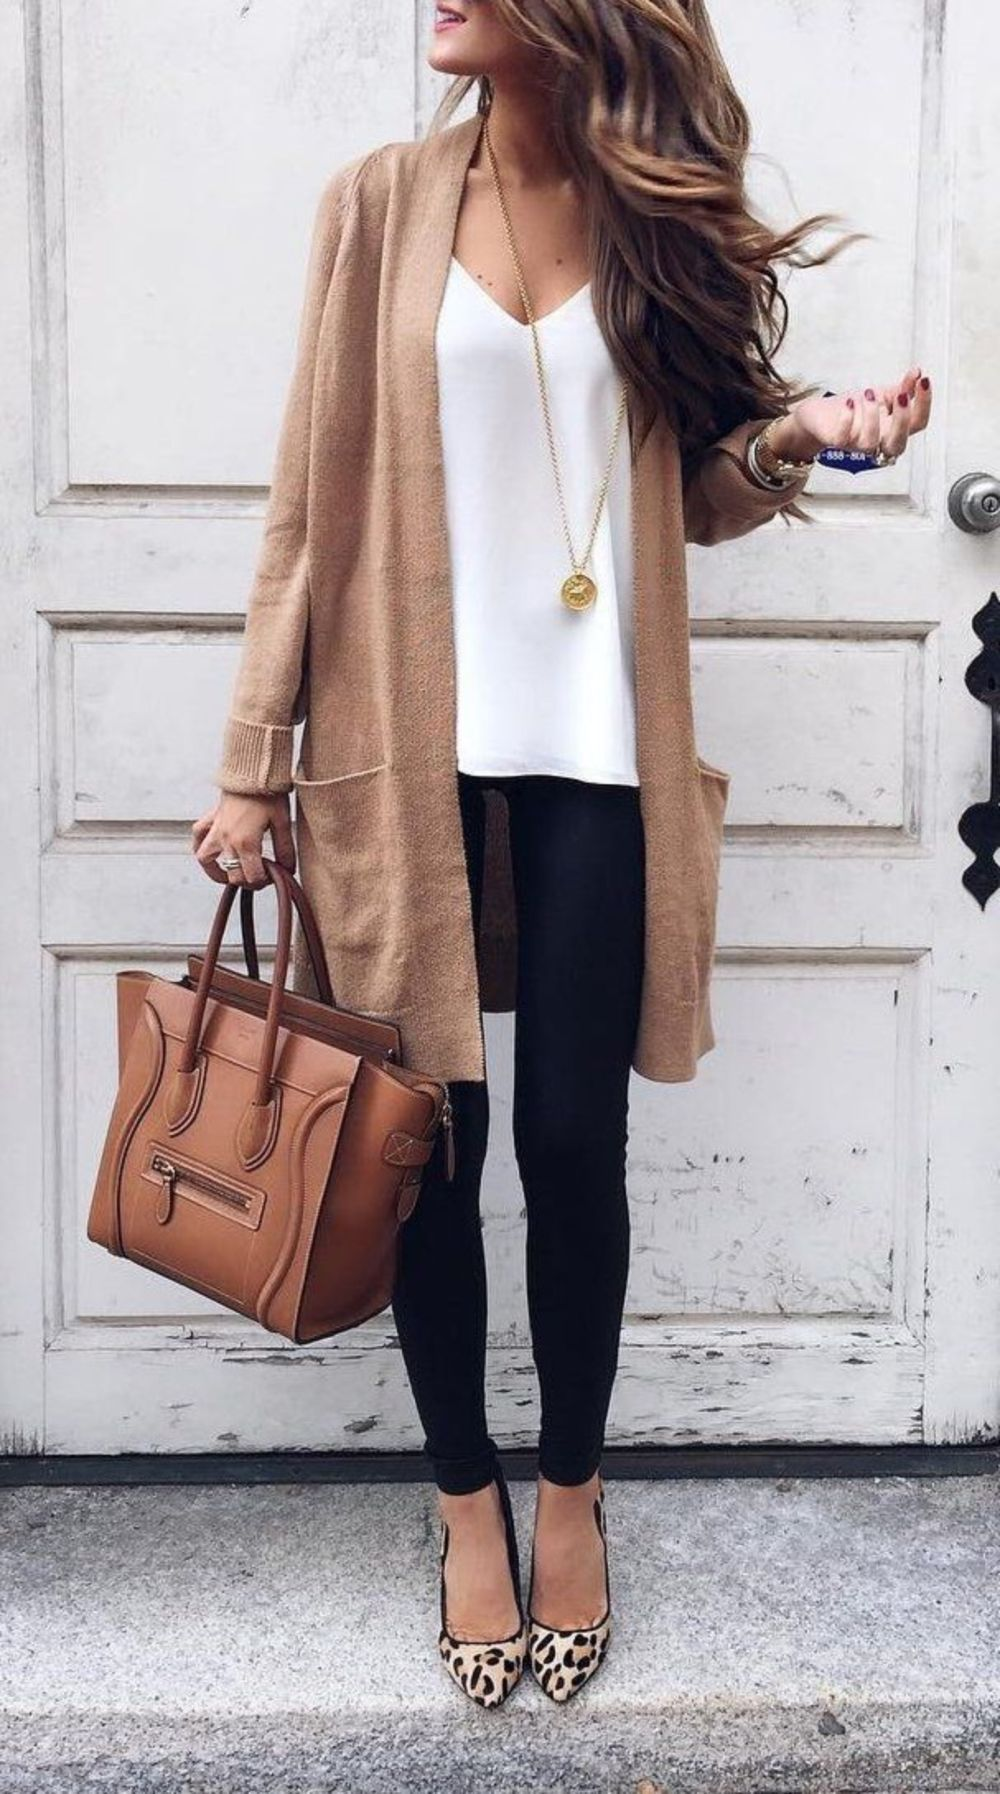 25 fall outfit ideas